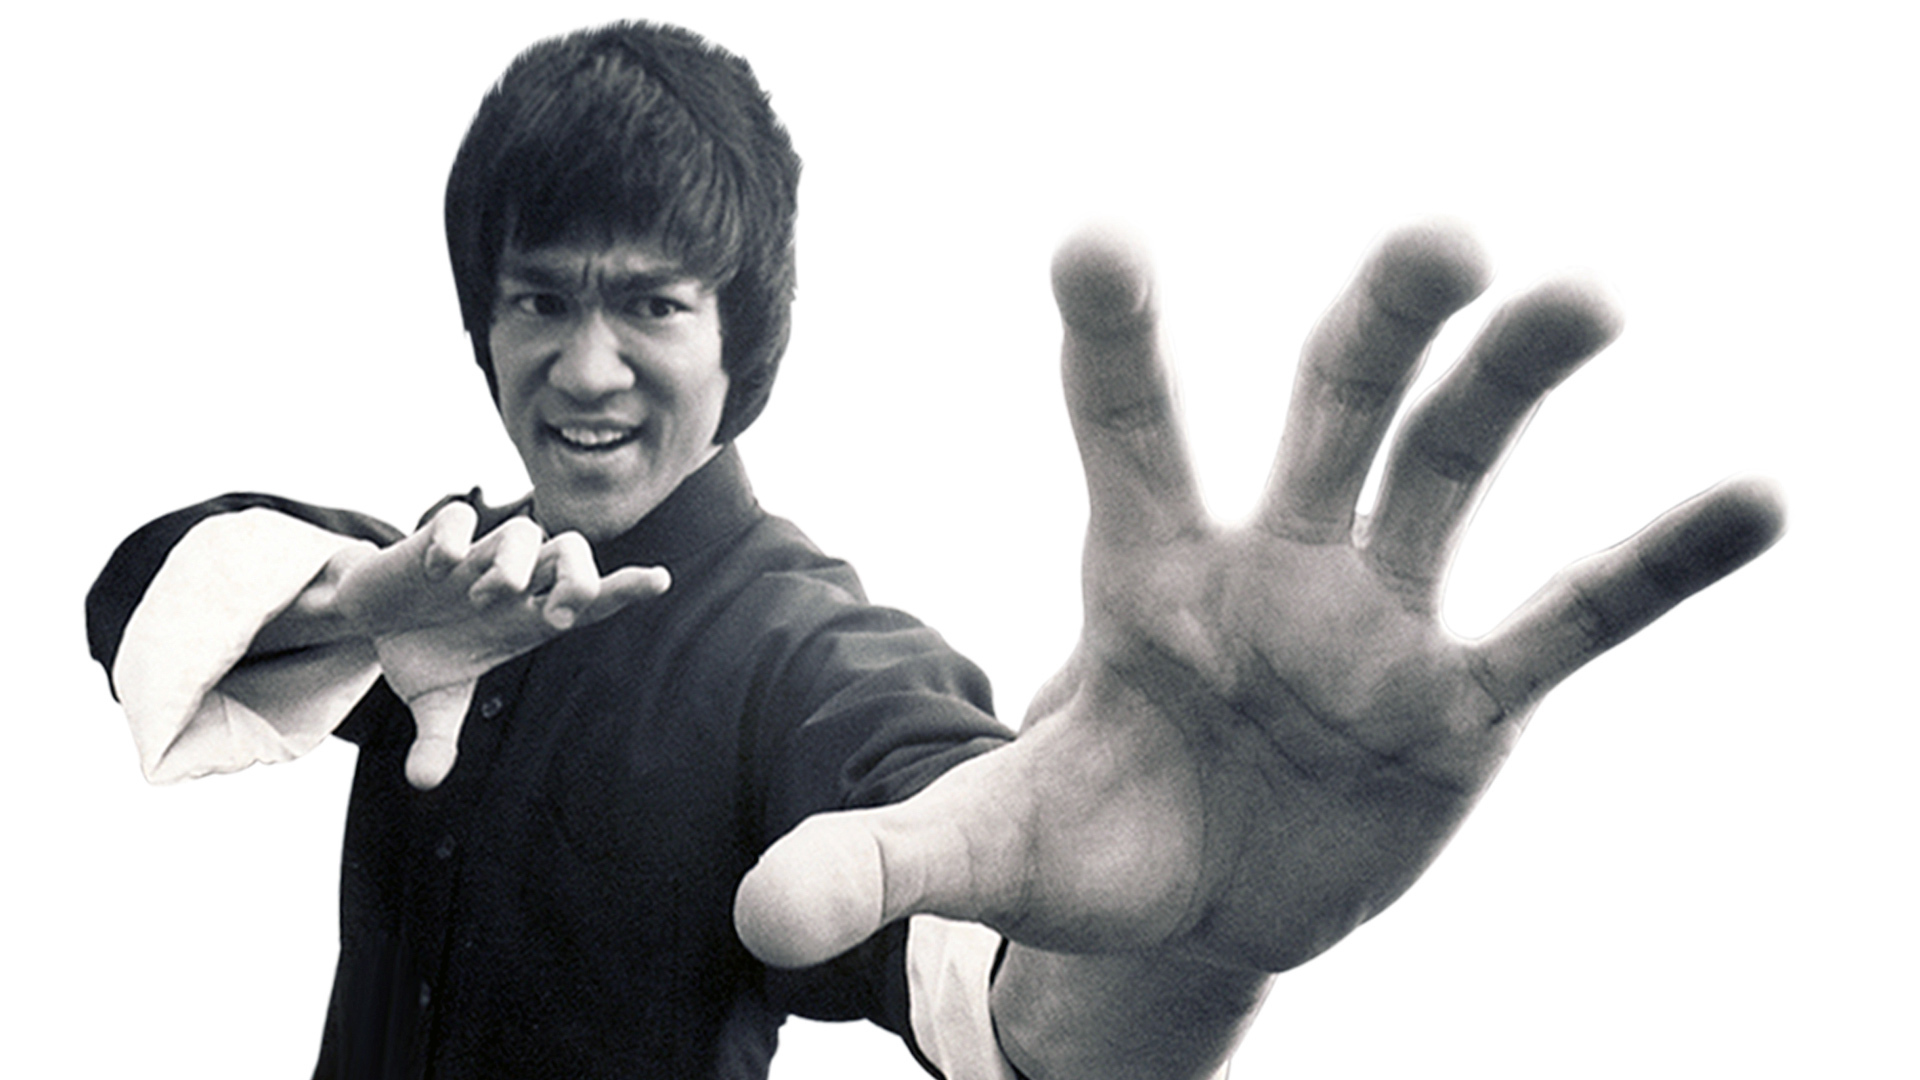 Bruce Lee HD Wallpapers Bruce Lee high quality and definition 1920x1080